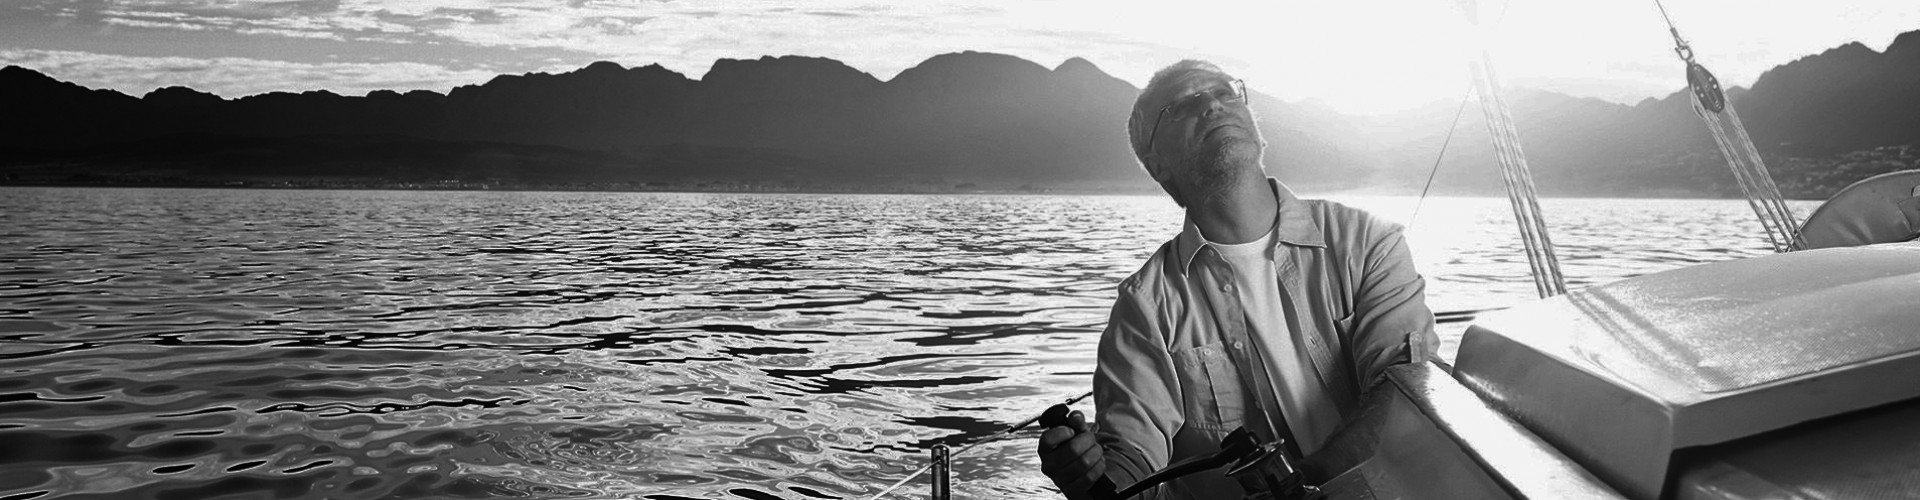 senior man on his sailboat